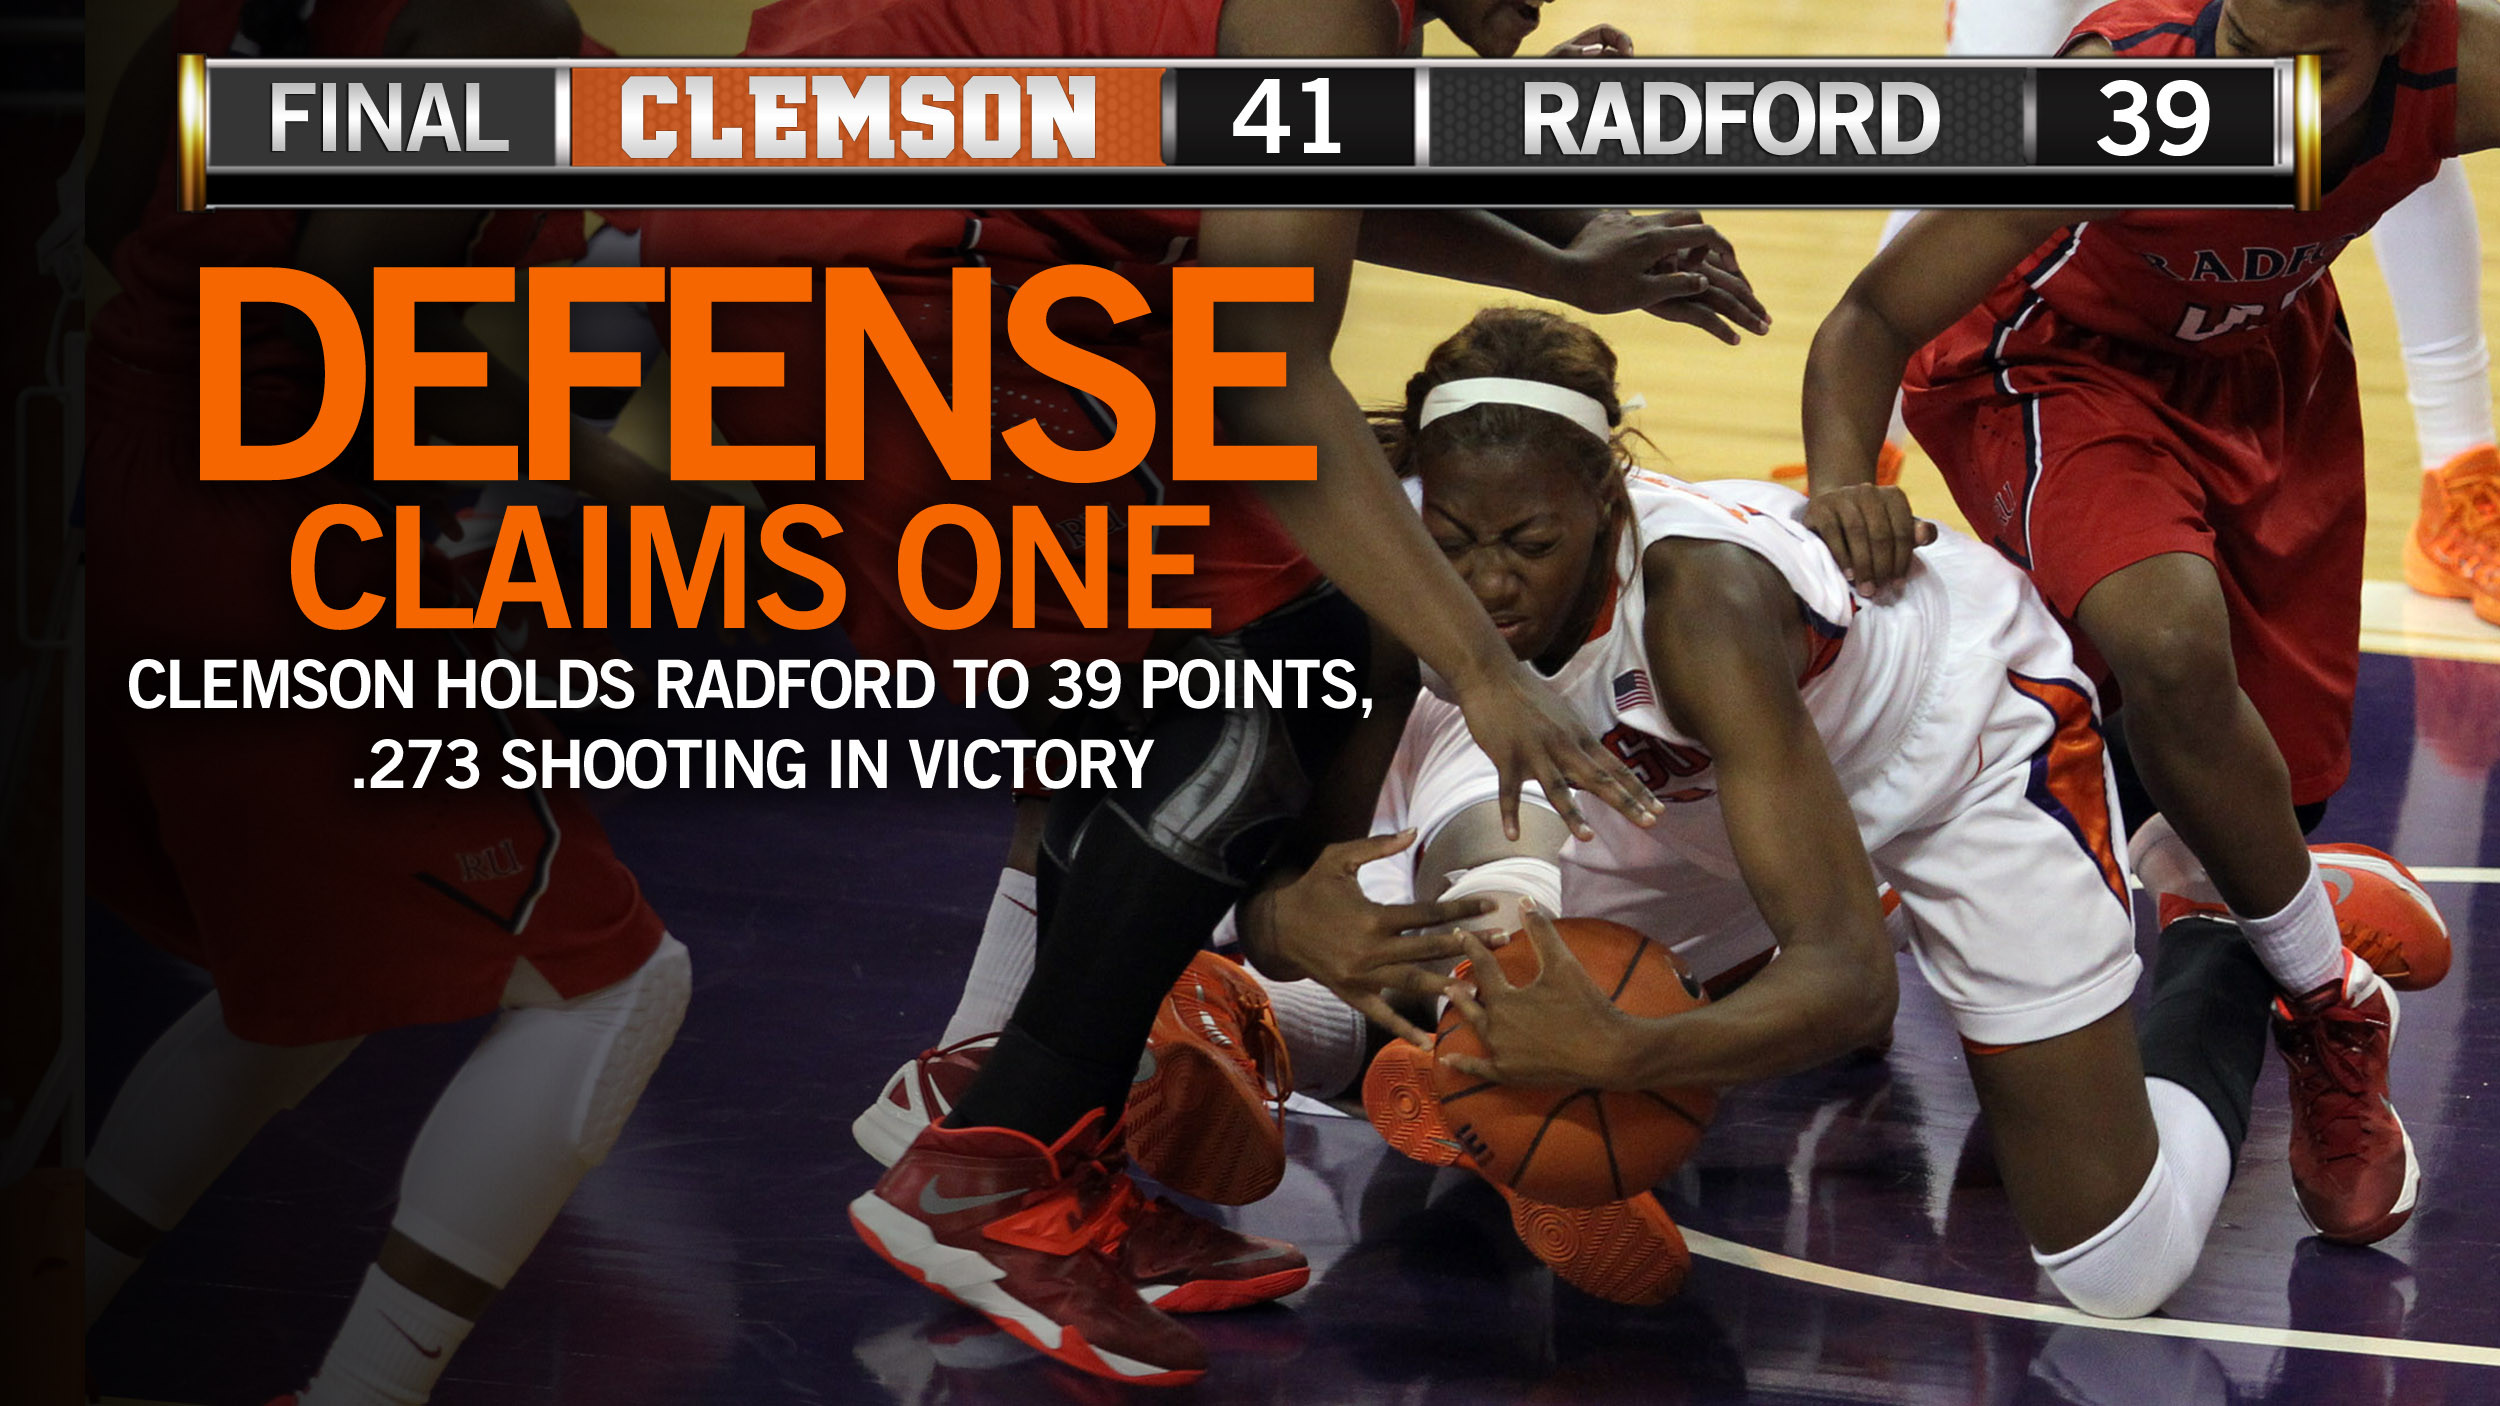 @ClemsonWBB Wins in a Defensive Struggle Wednesday Night